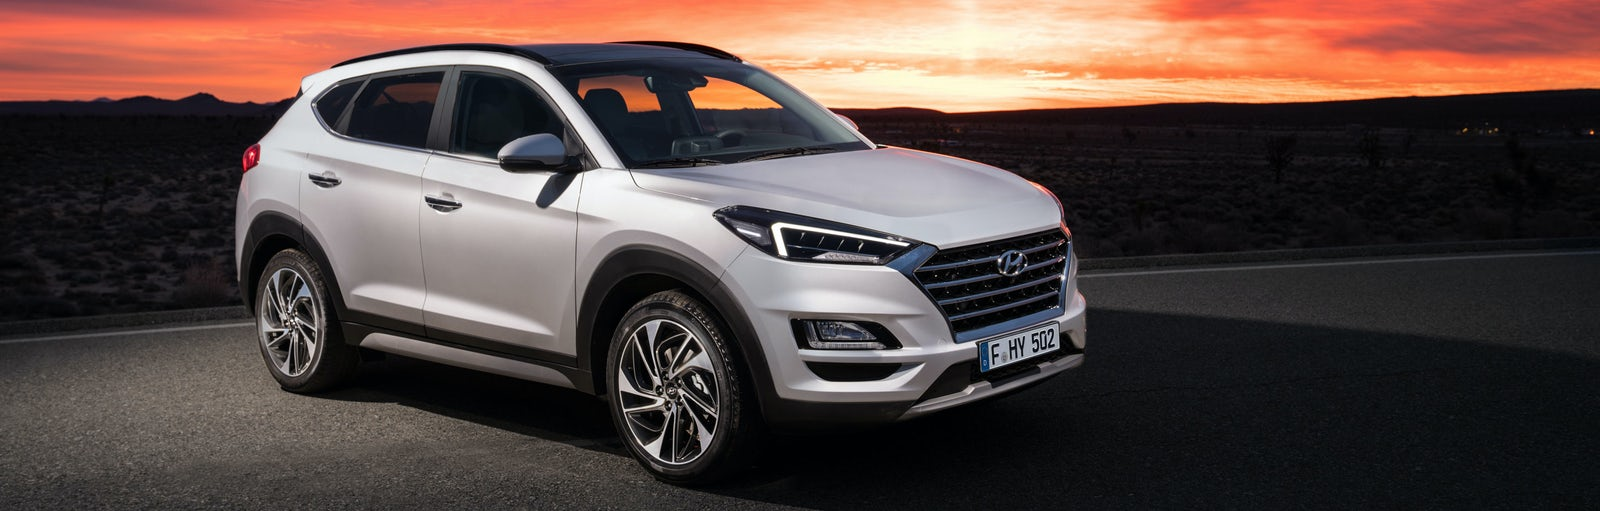 hyundai tucson 2018 preise motoren verkaufsstart carwow. Black Bedroom Furniture Sets. Home Design Ideas